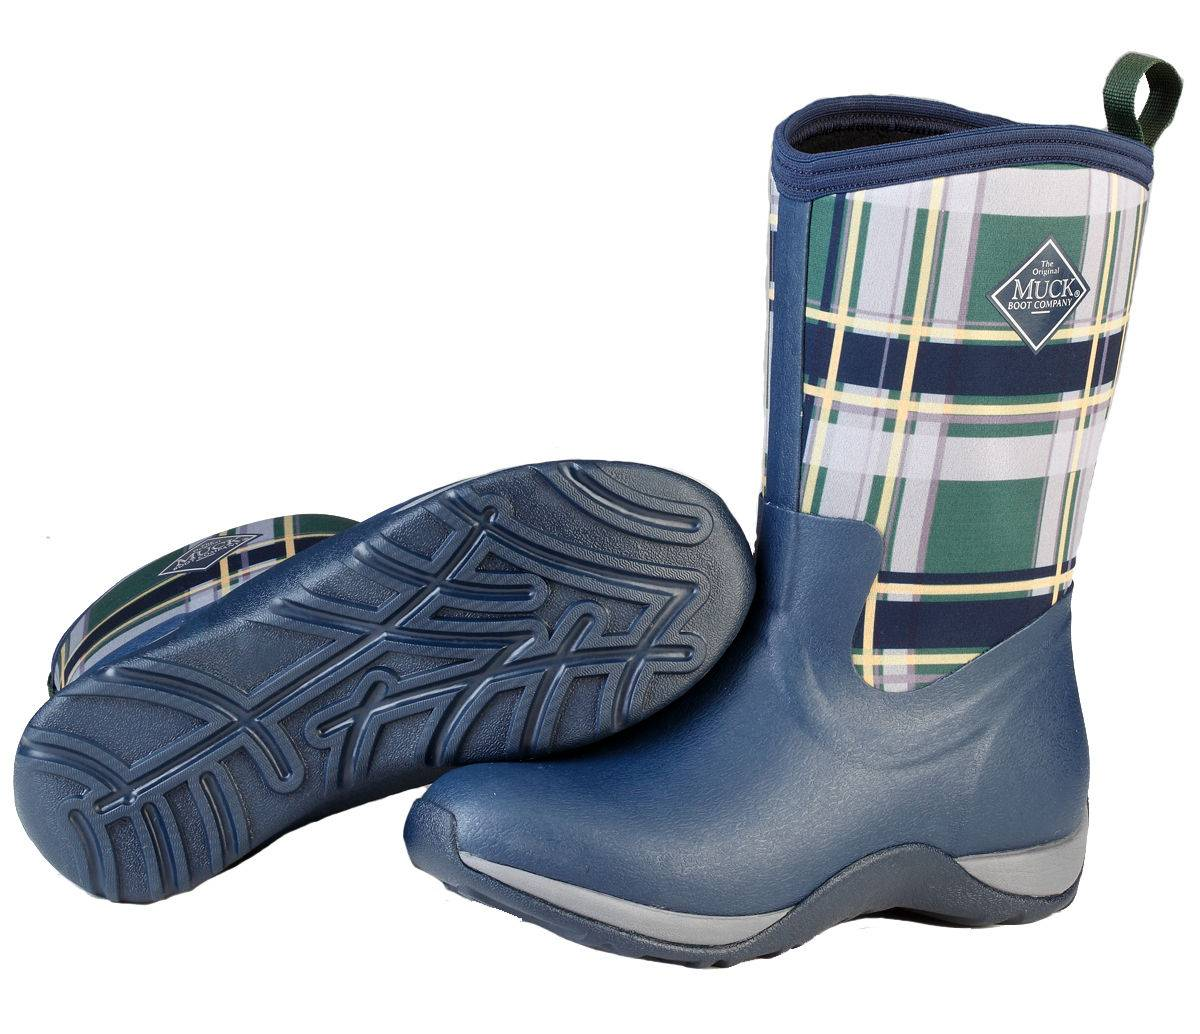 Muck Boots Women's Arctic Weekend - Navy/Green Plaid